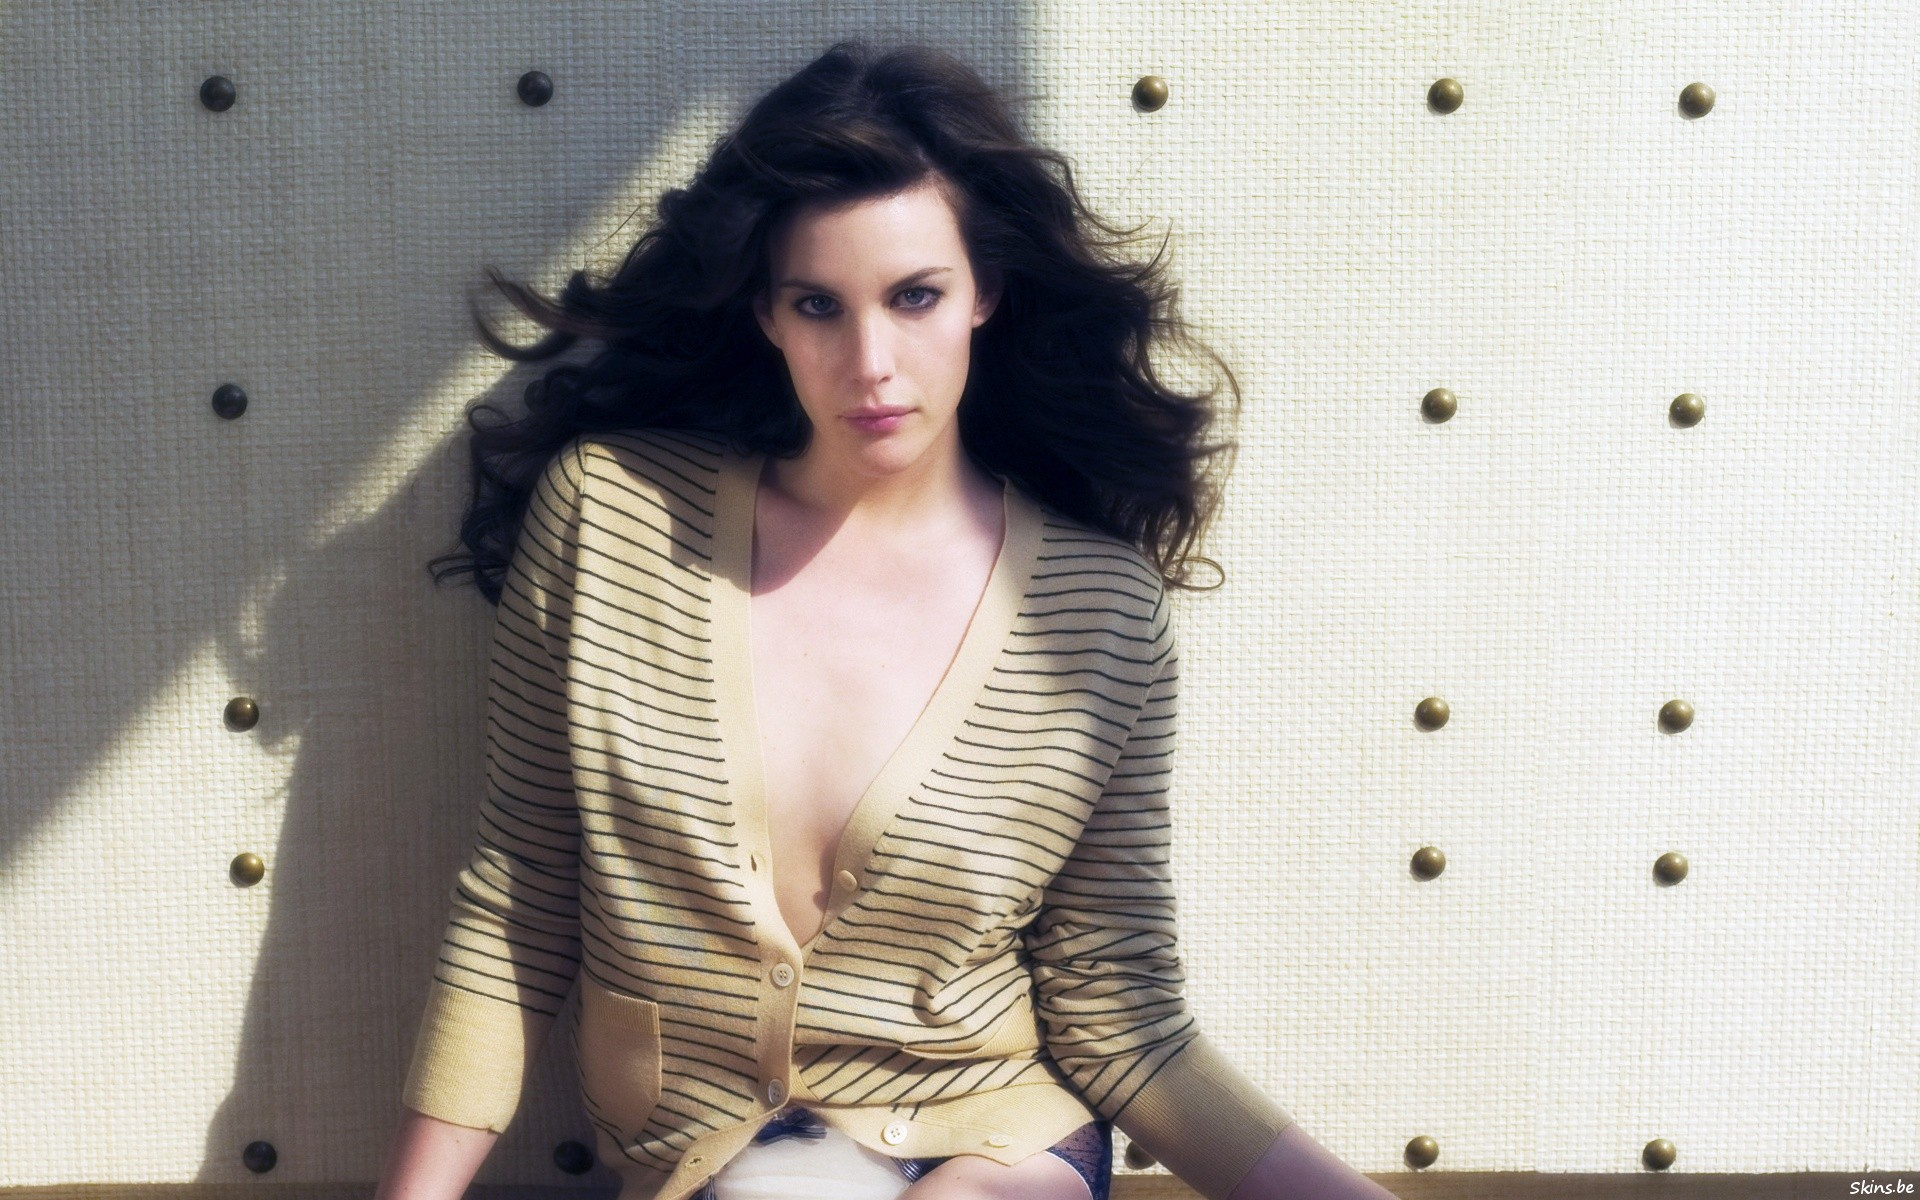 Cute Liv Tyler Hot And Sexy Wallpapers   All HD Wallpapers 1920x1200